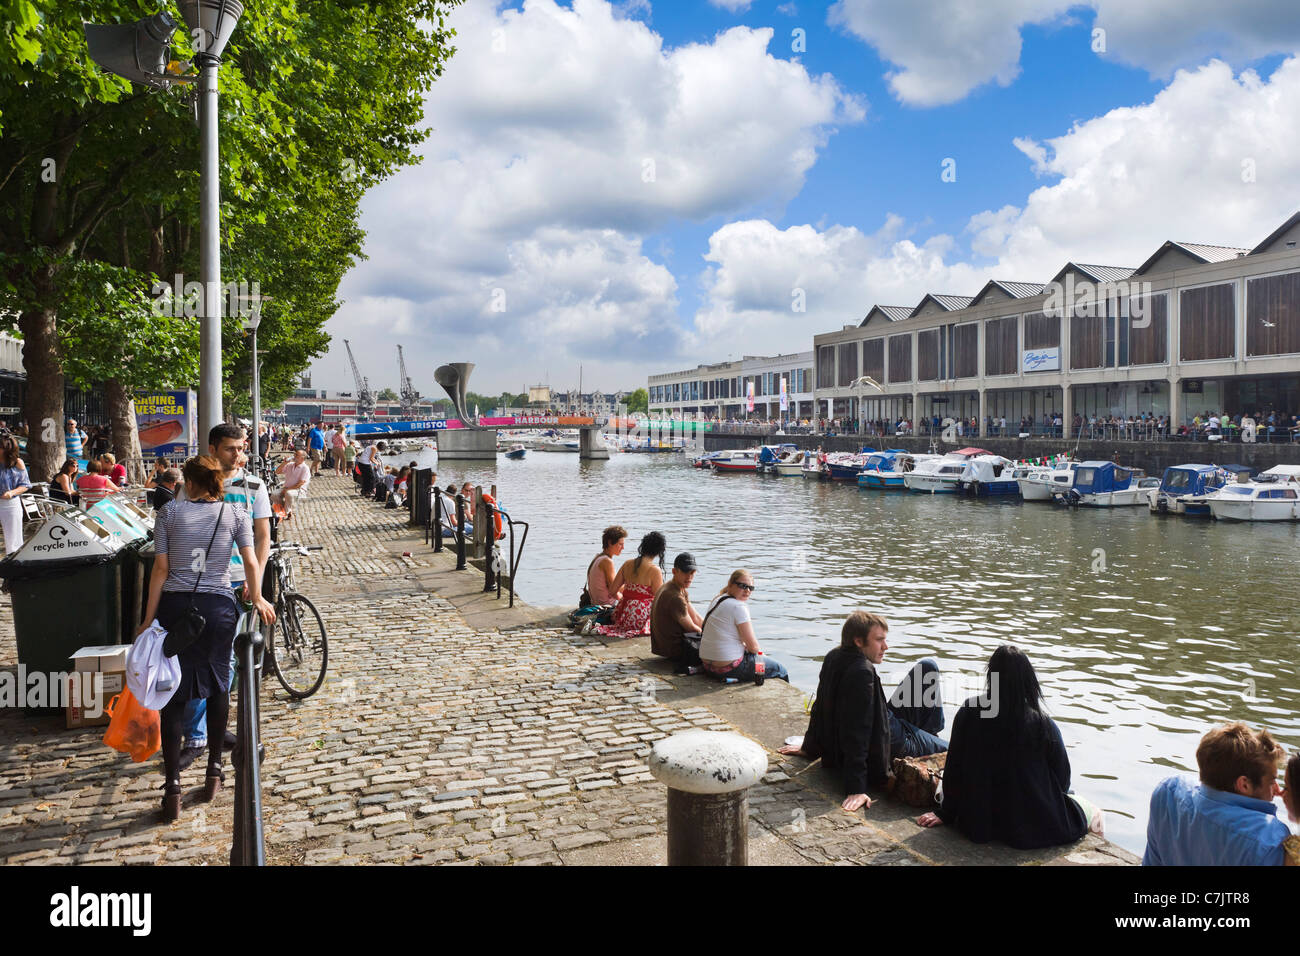 The waterfront at Narrow Quay during the Harbour Festival in July 2011, Bristol Harbour, Bristol, Avon, England, - Stock Image